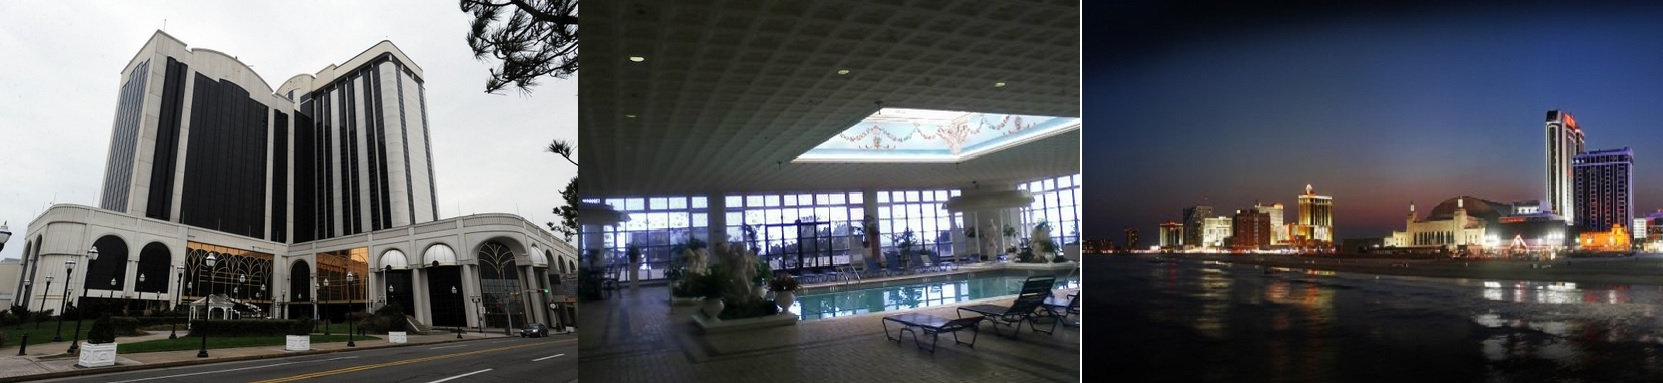 The Atlantic City Casino hotel view, oceanfront view and inside pool